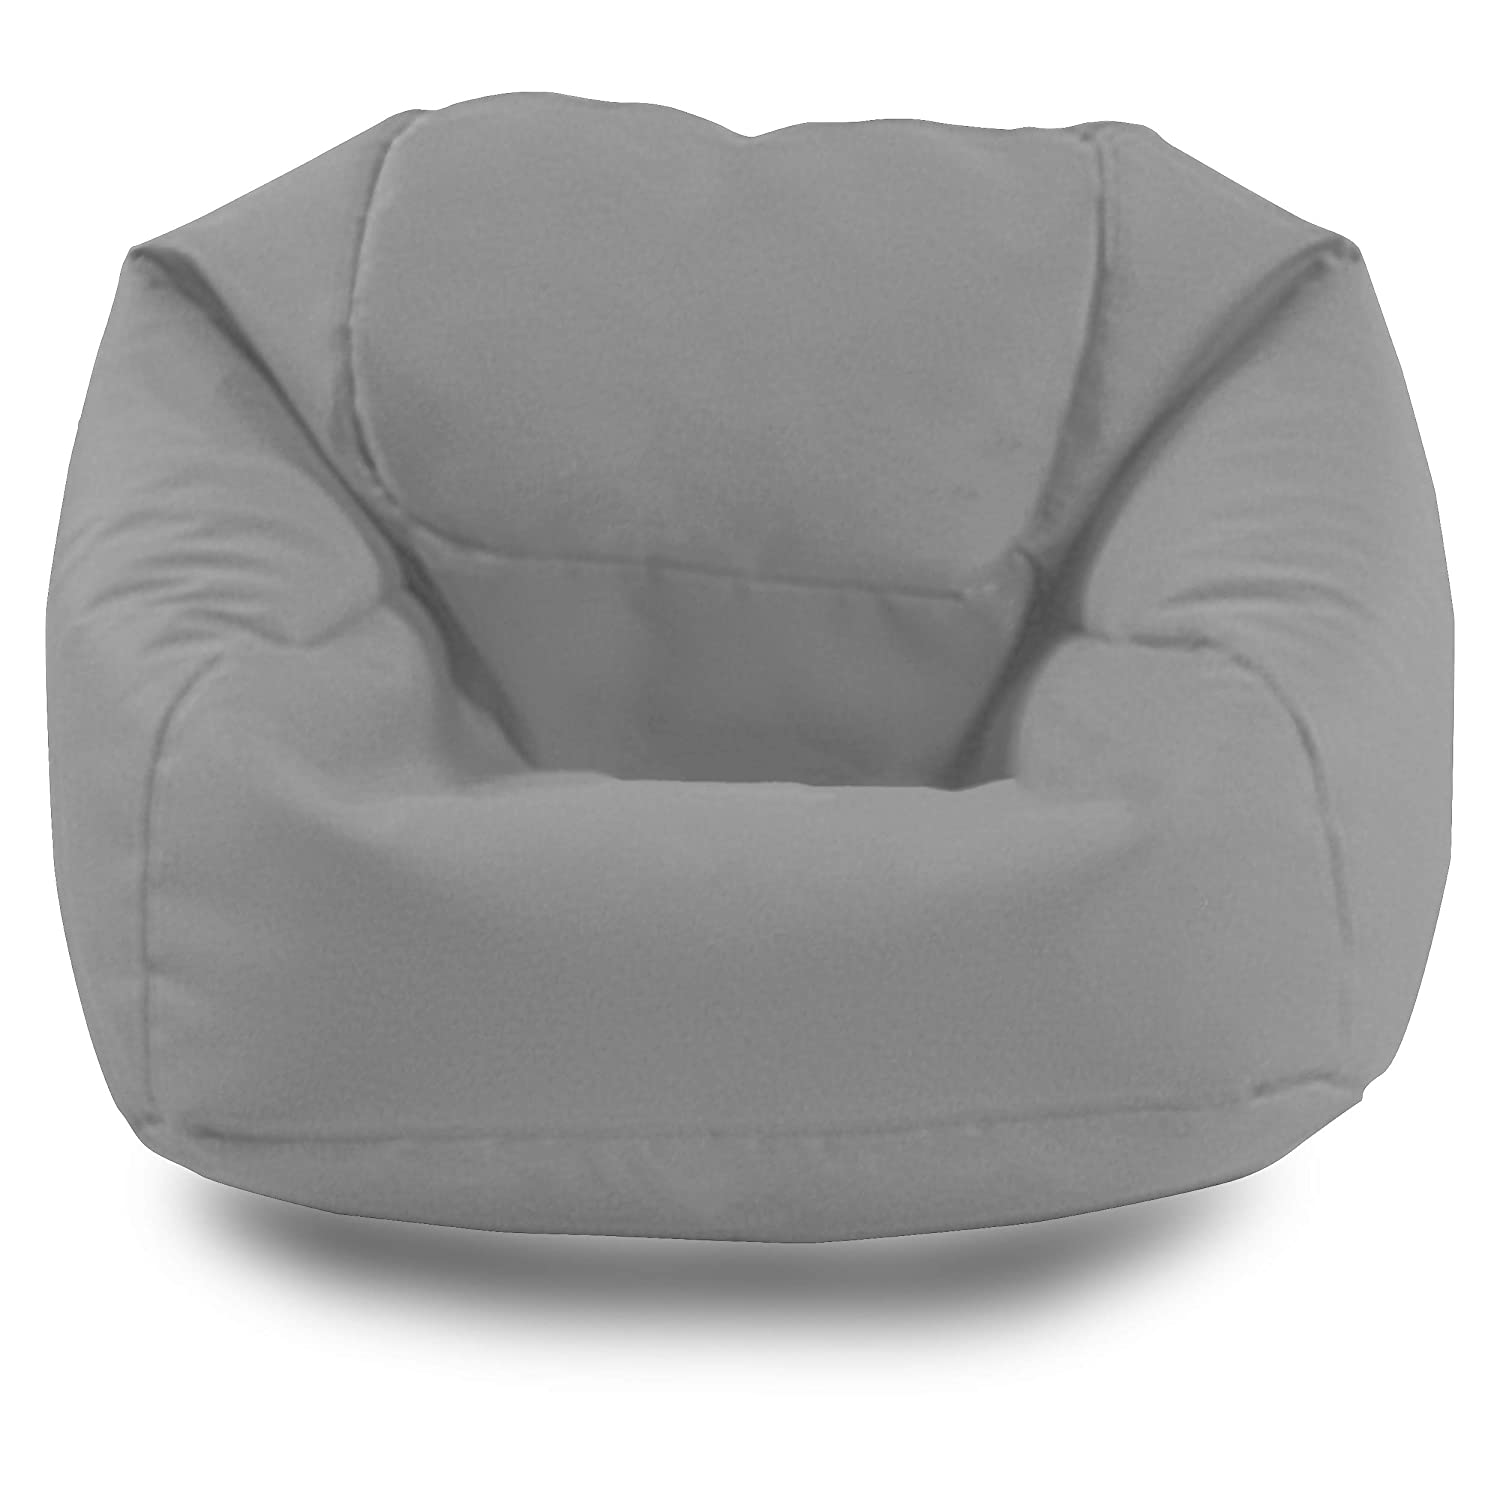 Fantastic Gilda Kids Beanbag Chair Outland Classic Gaming Childrens Bean Bag Ages 3 Years Dual Zip System Teflon Coated Polyester Virgin Beans Cjindustries Chair Design For Home Cjindustriesco